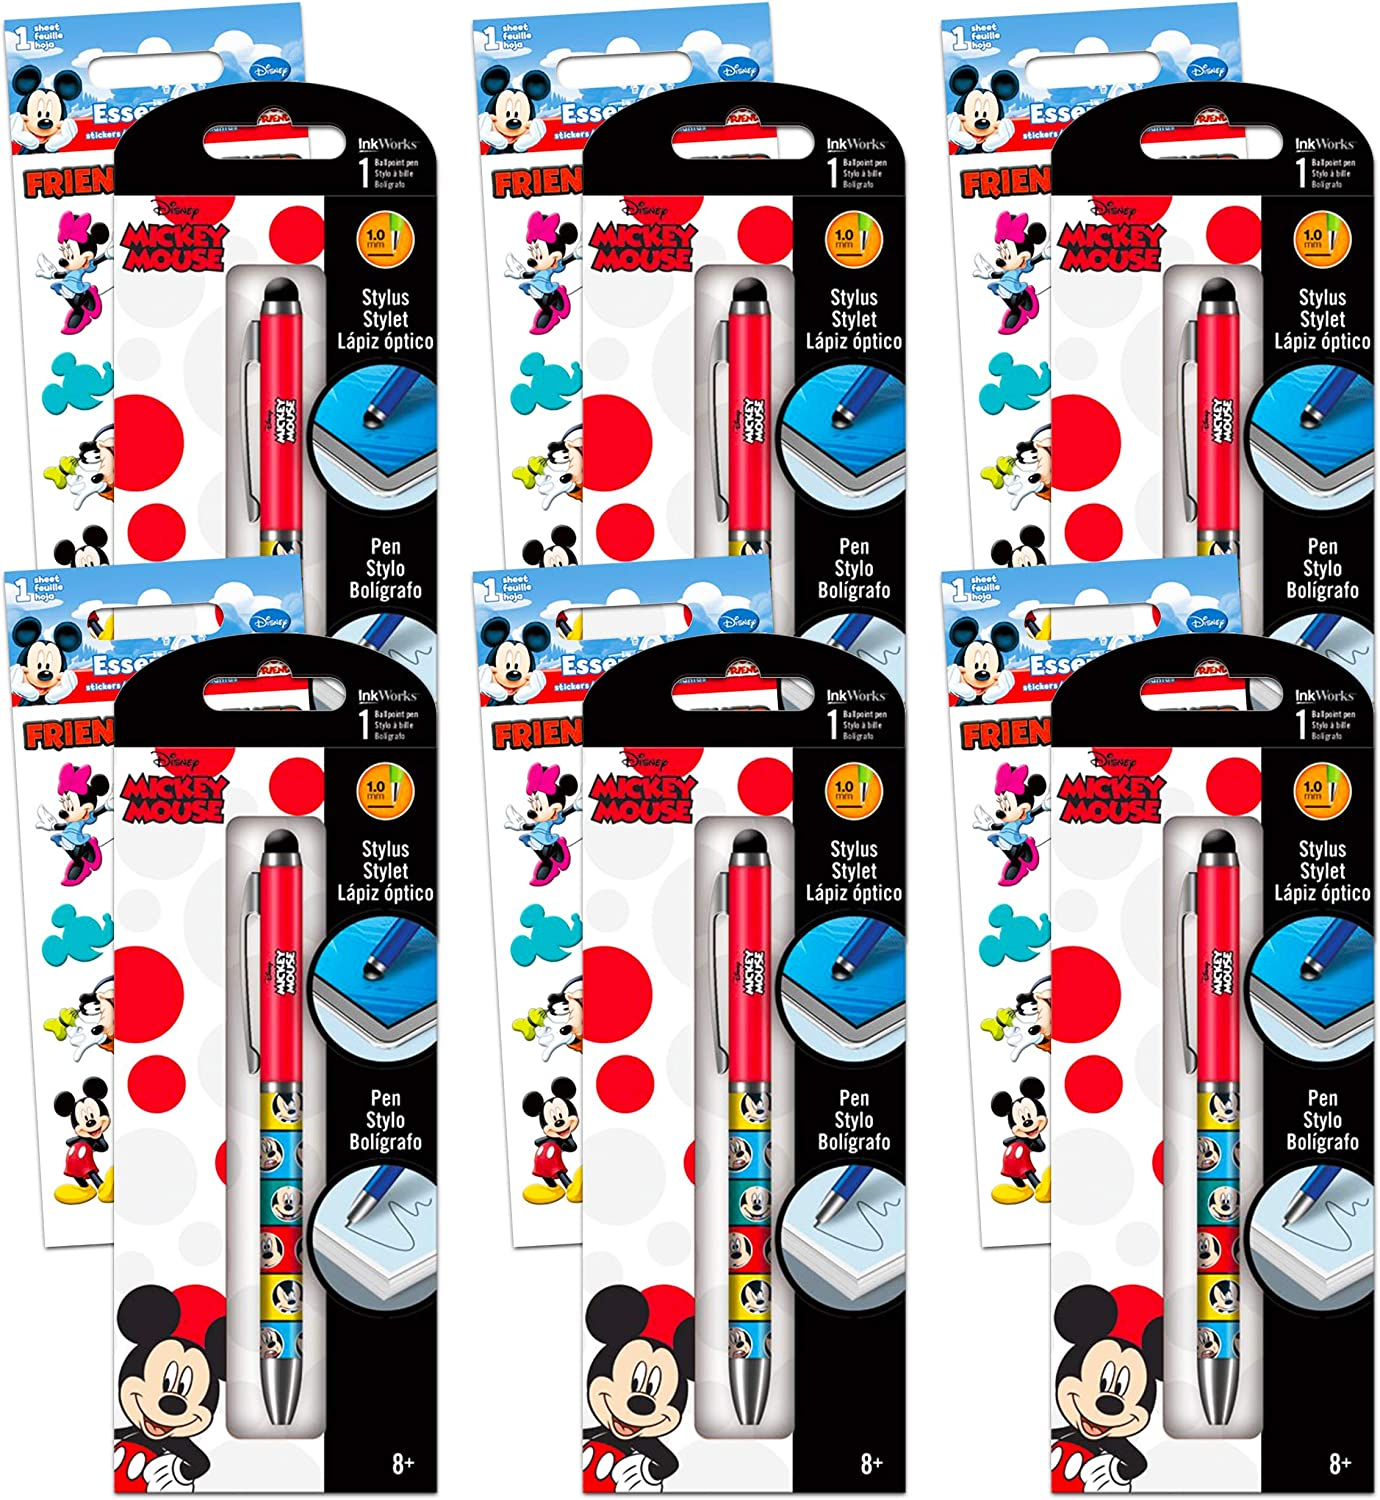 Disney Mickey Mouse Party Supplies Set - 12 Pack Mickey Mouse Pen Set with Mickey Mouse Stickers Disney Mickey Mouse Office Accessories (Mickey Mouse Office Supplies Office Decor)